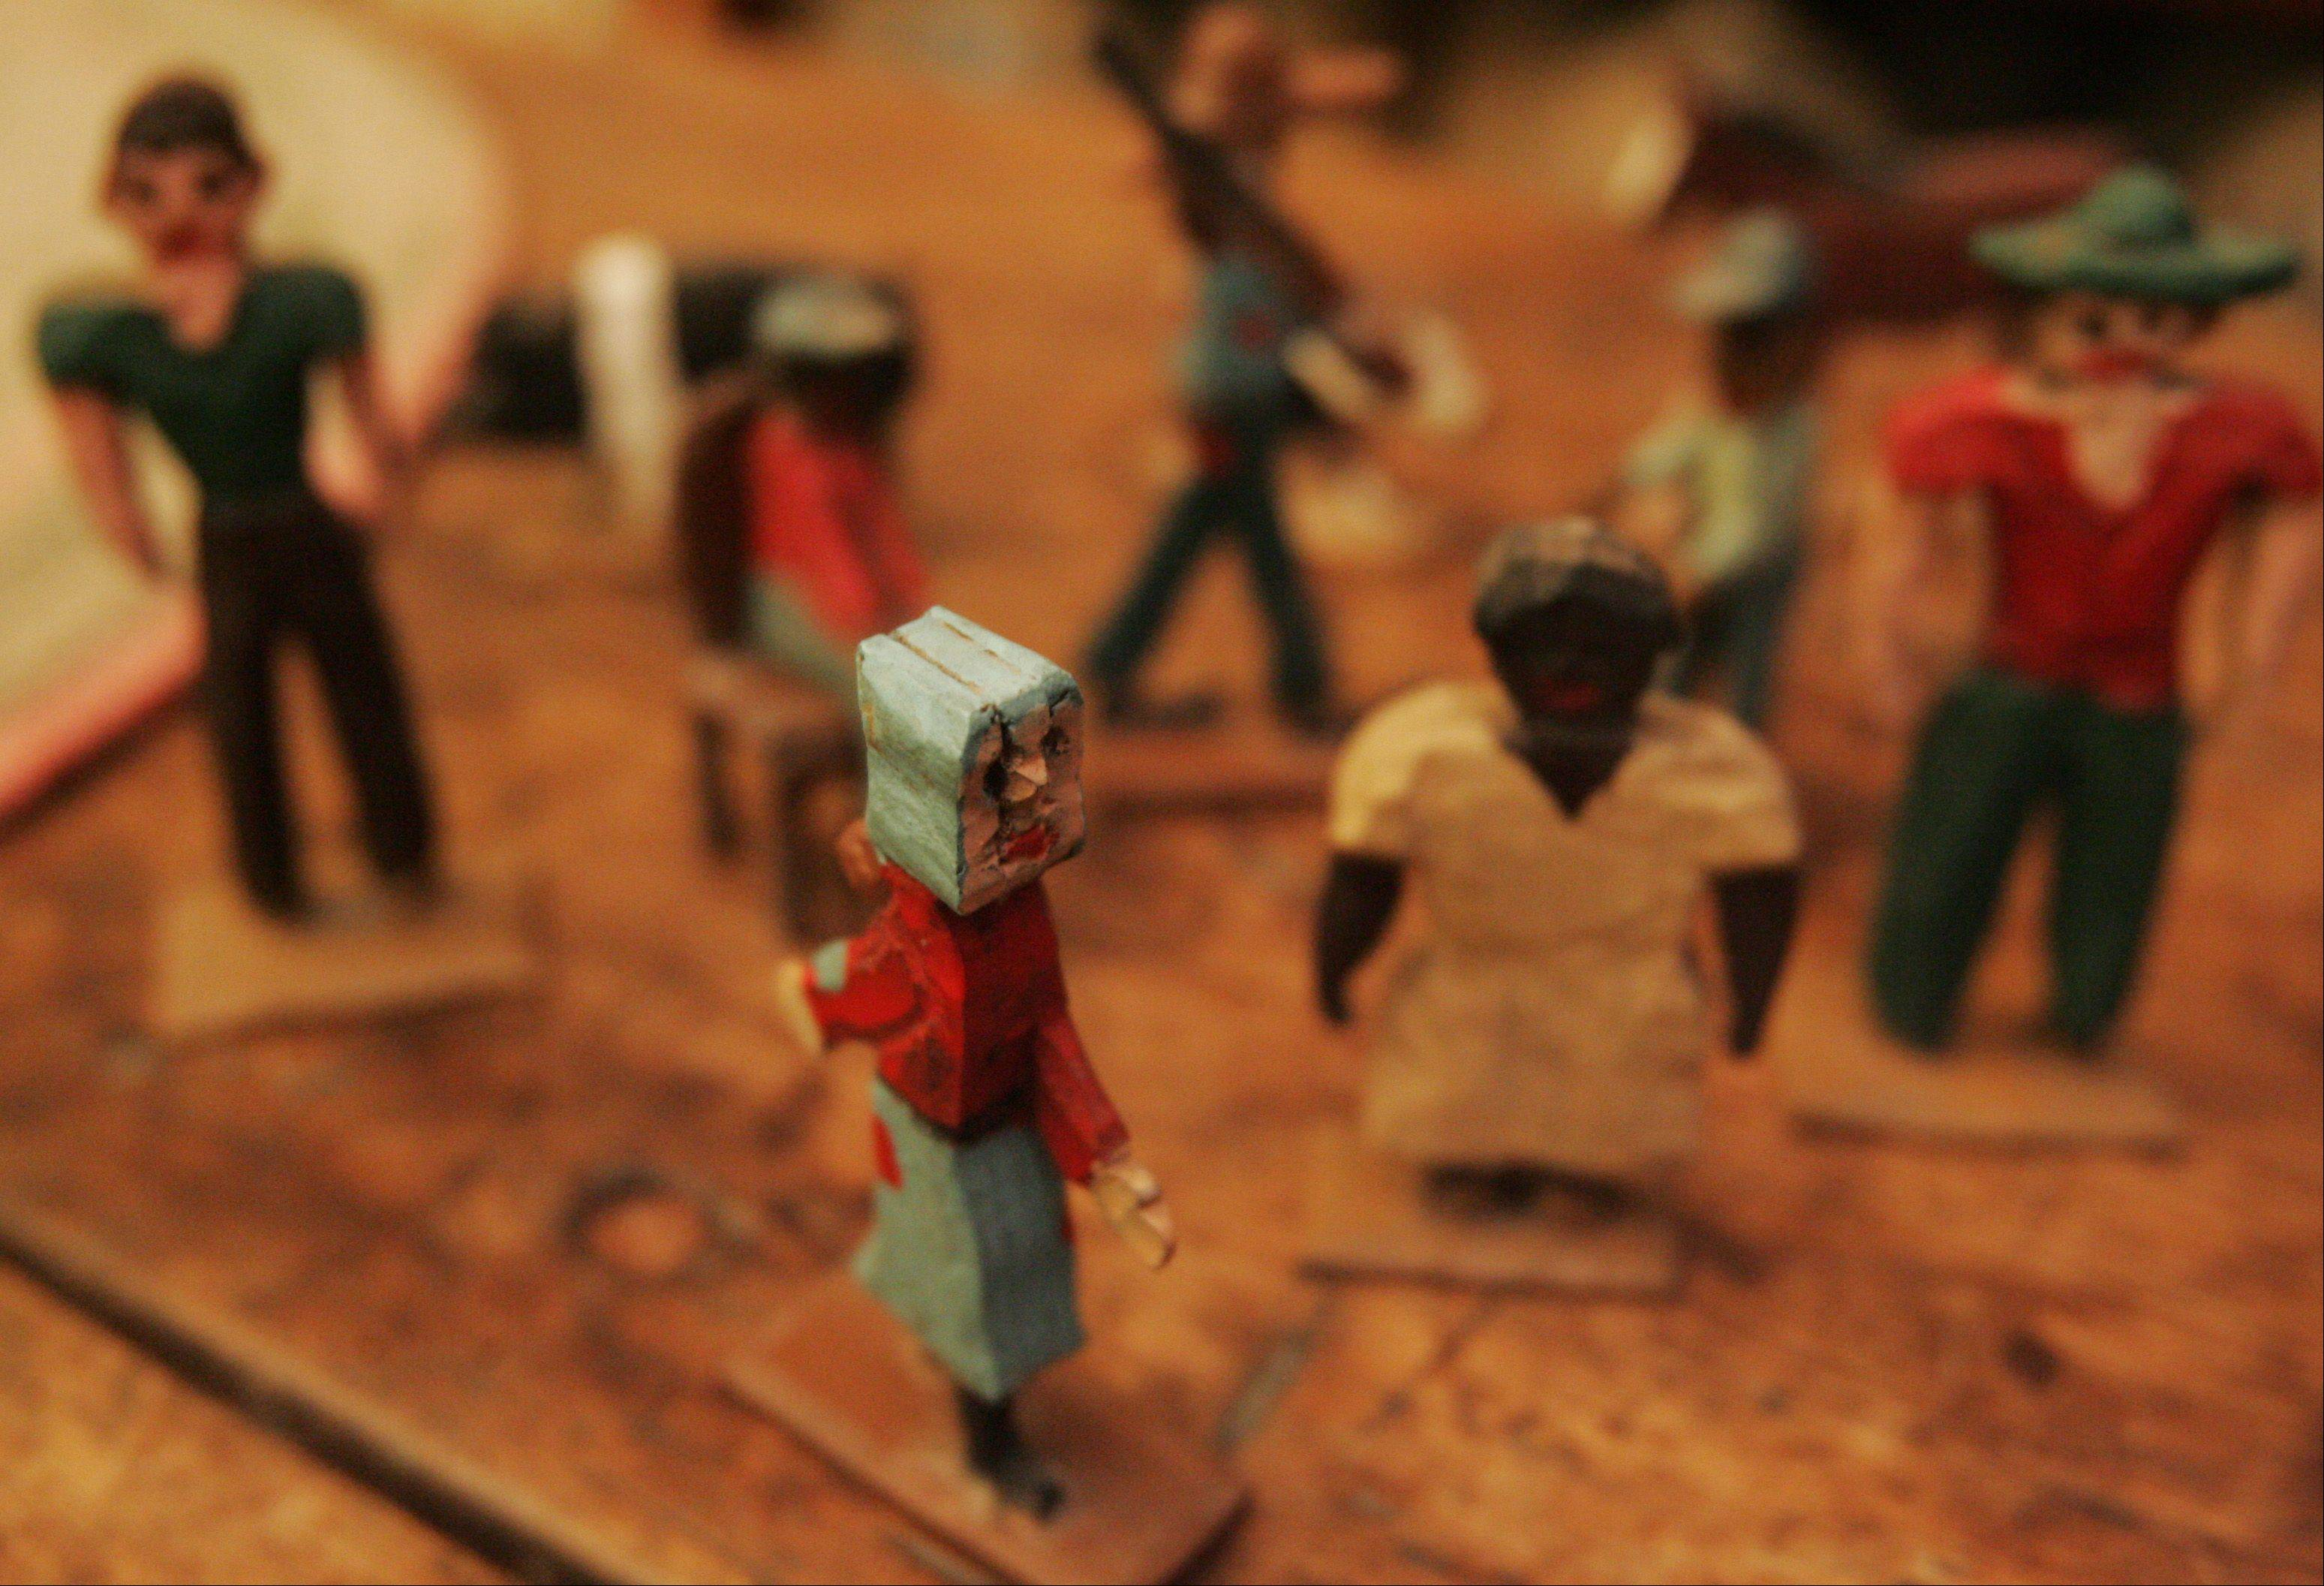 A collection of tiny handmade figures at the Little home in Kingston.